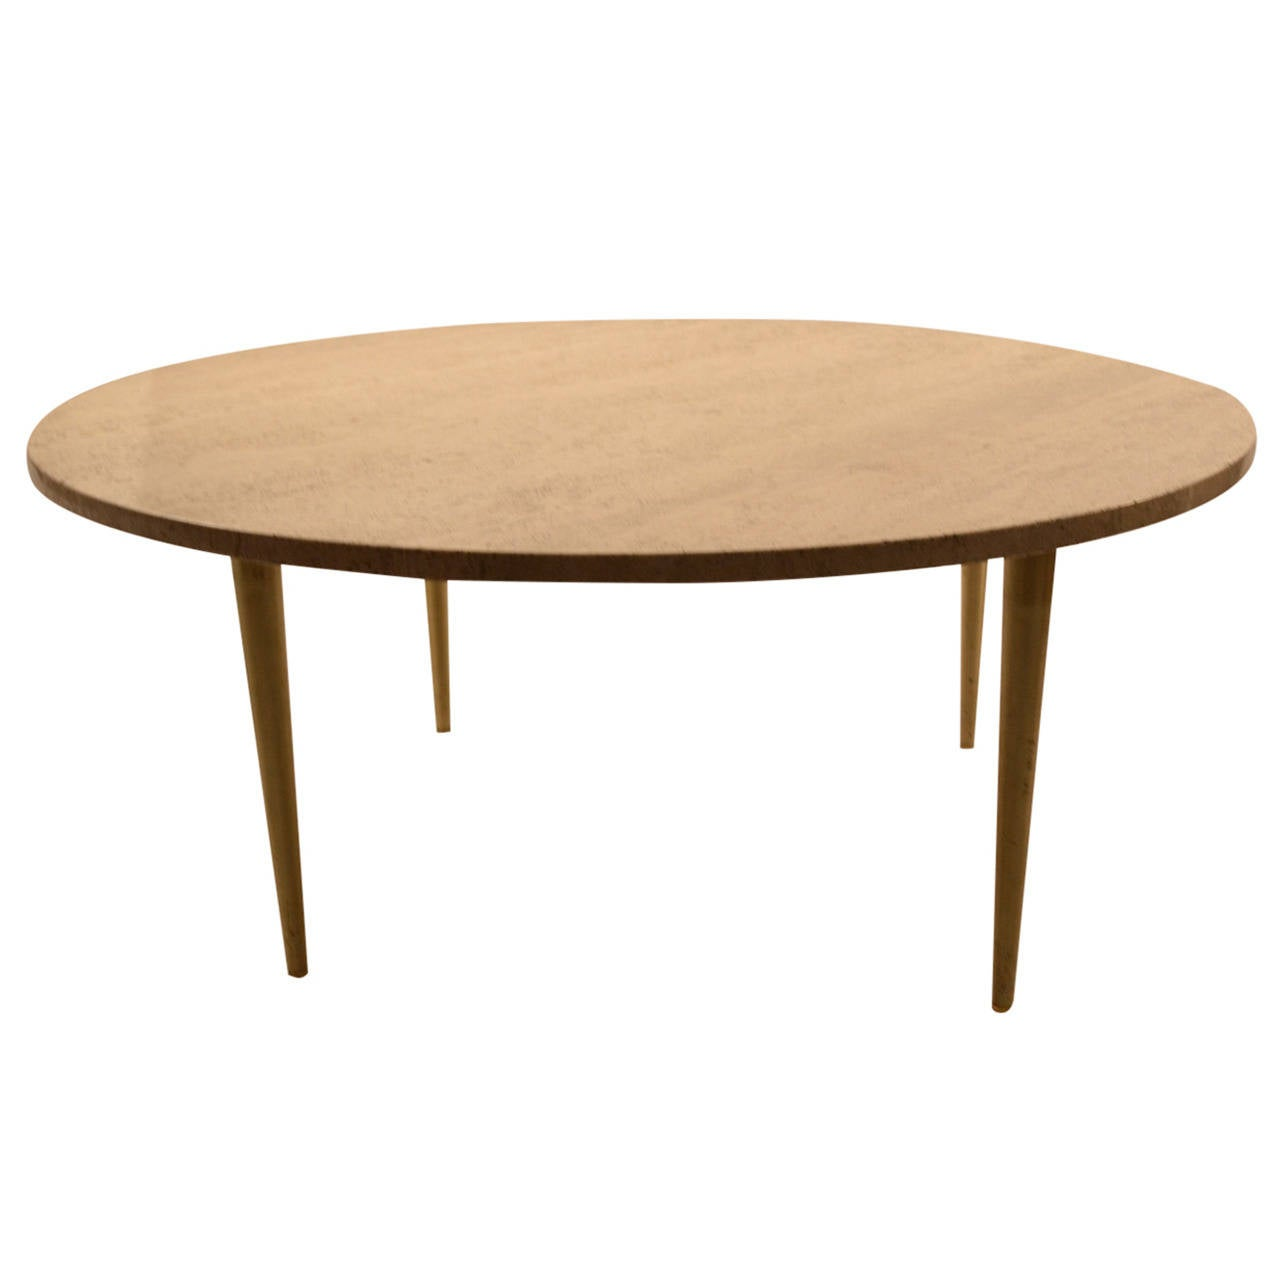 Italian round marble top coffee cocktail table for sale at 1stdibs Round espresso coffee table